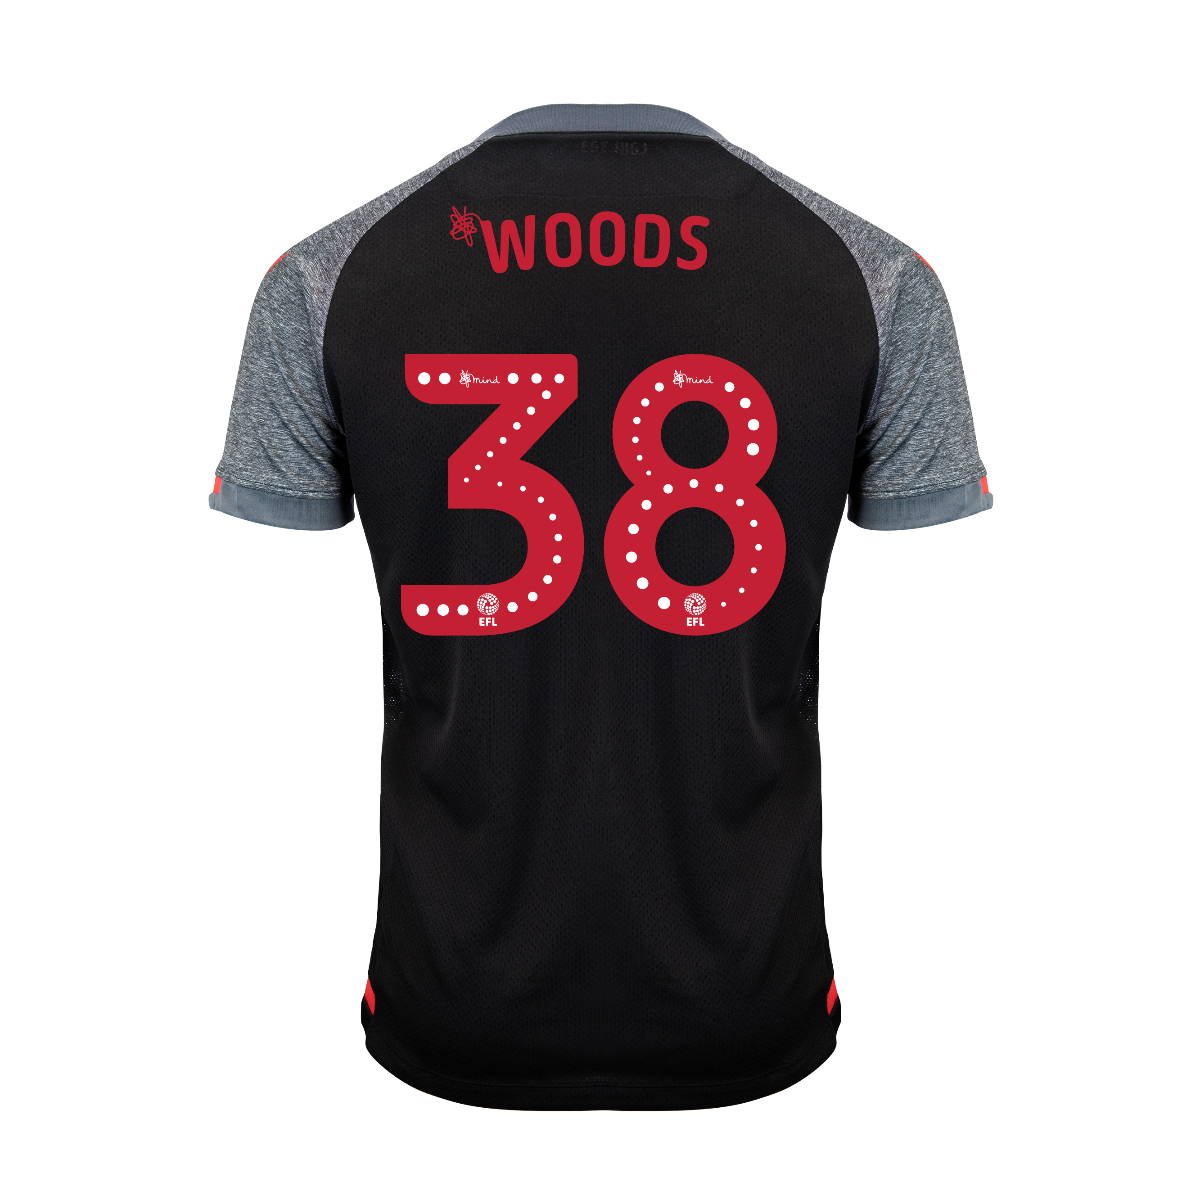 2019/20 Adult Away SS Shirt - Woods